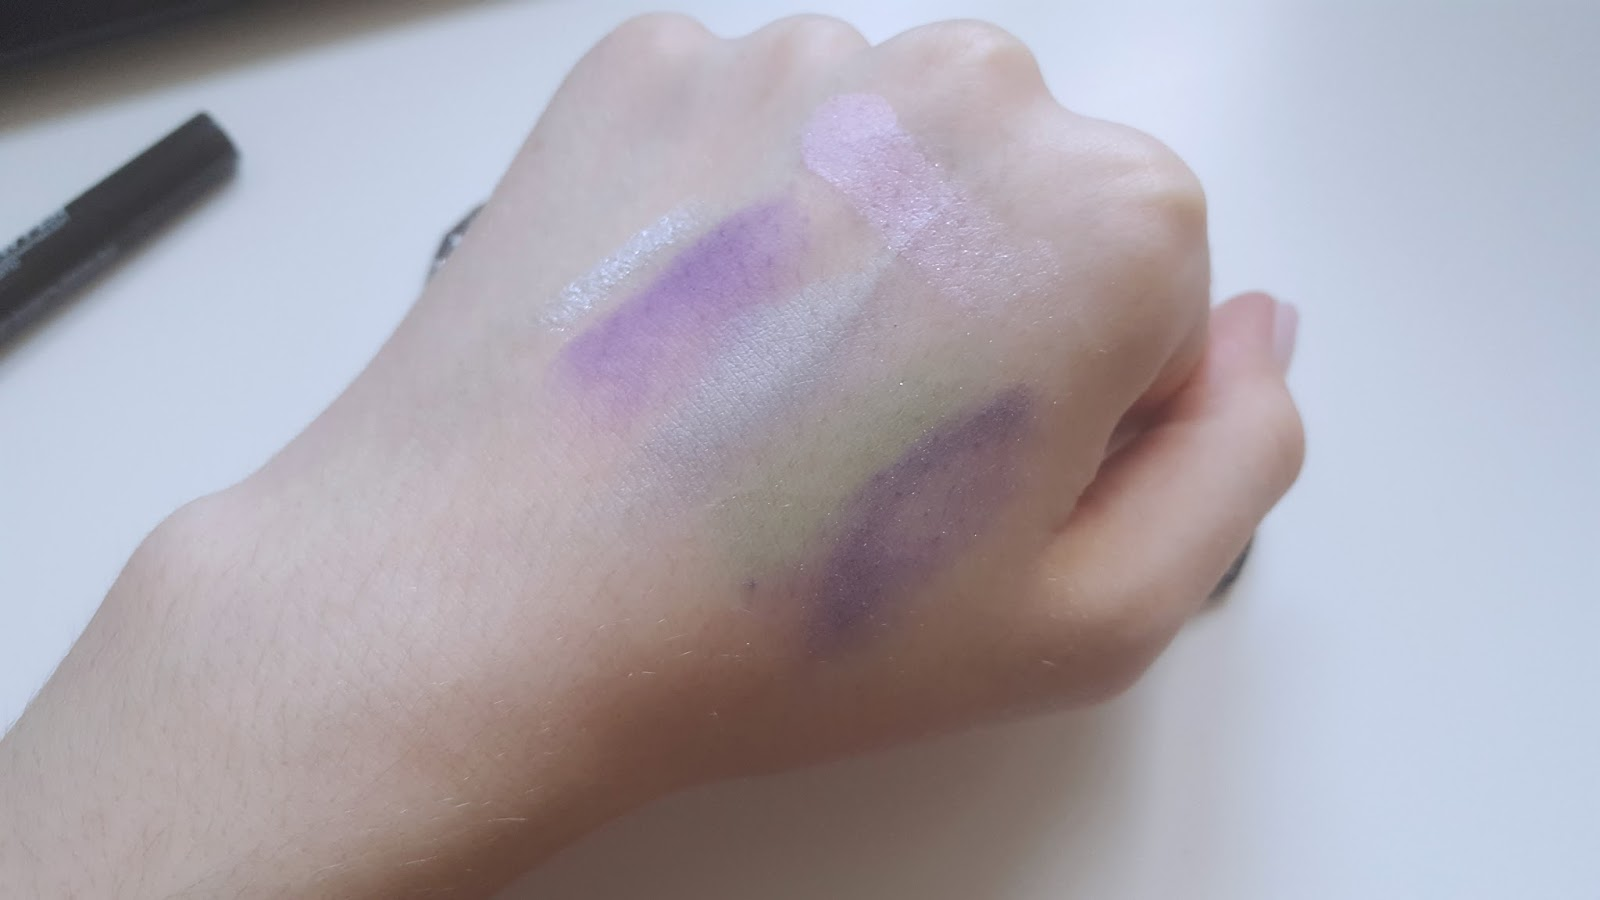 Stargazer Eyeshadows Swatch Sparkle Purple Dusty Sky Soft Candy Sparkle Green Soft Violet Eyeshadow Pen Sparkle